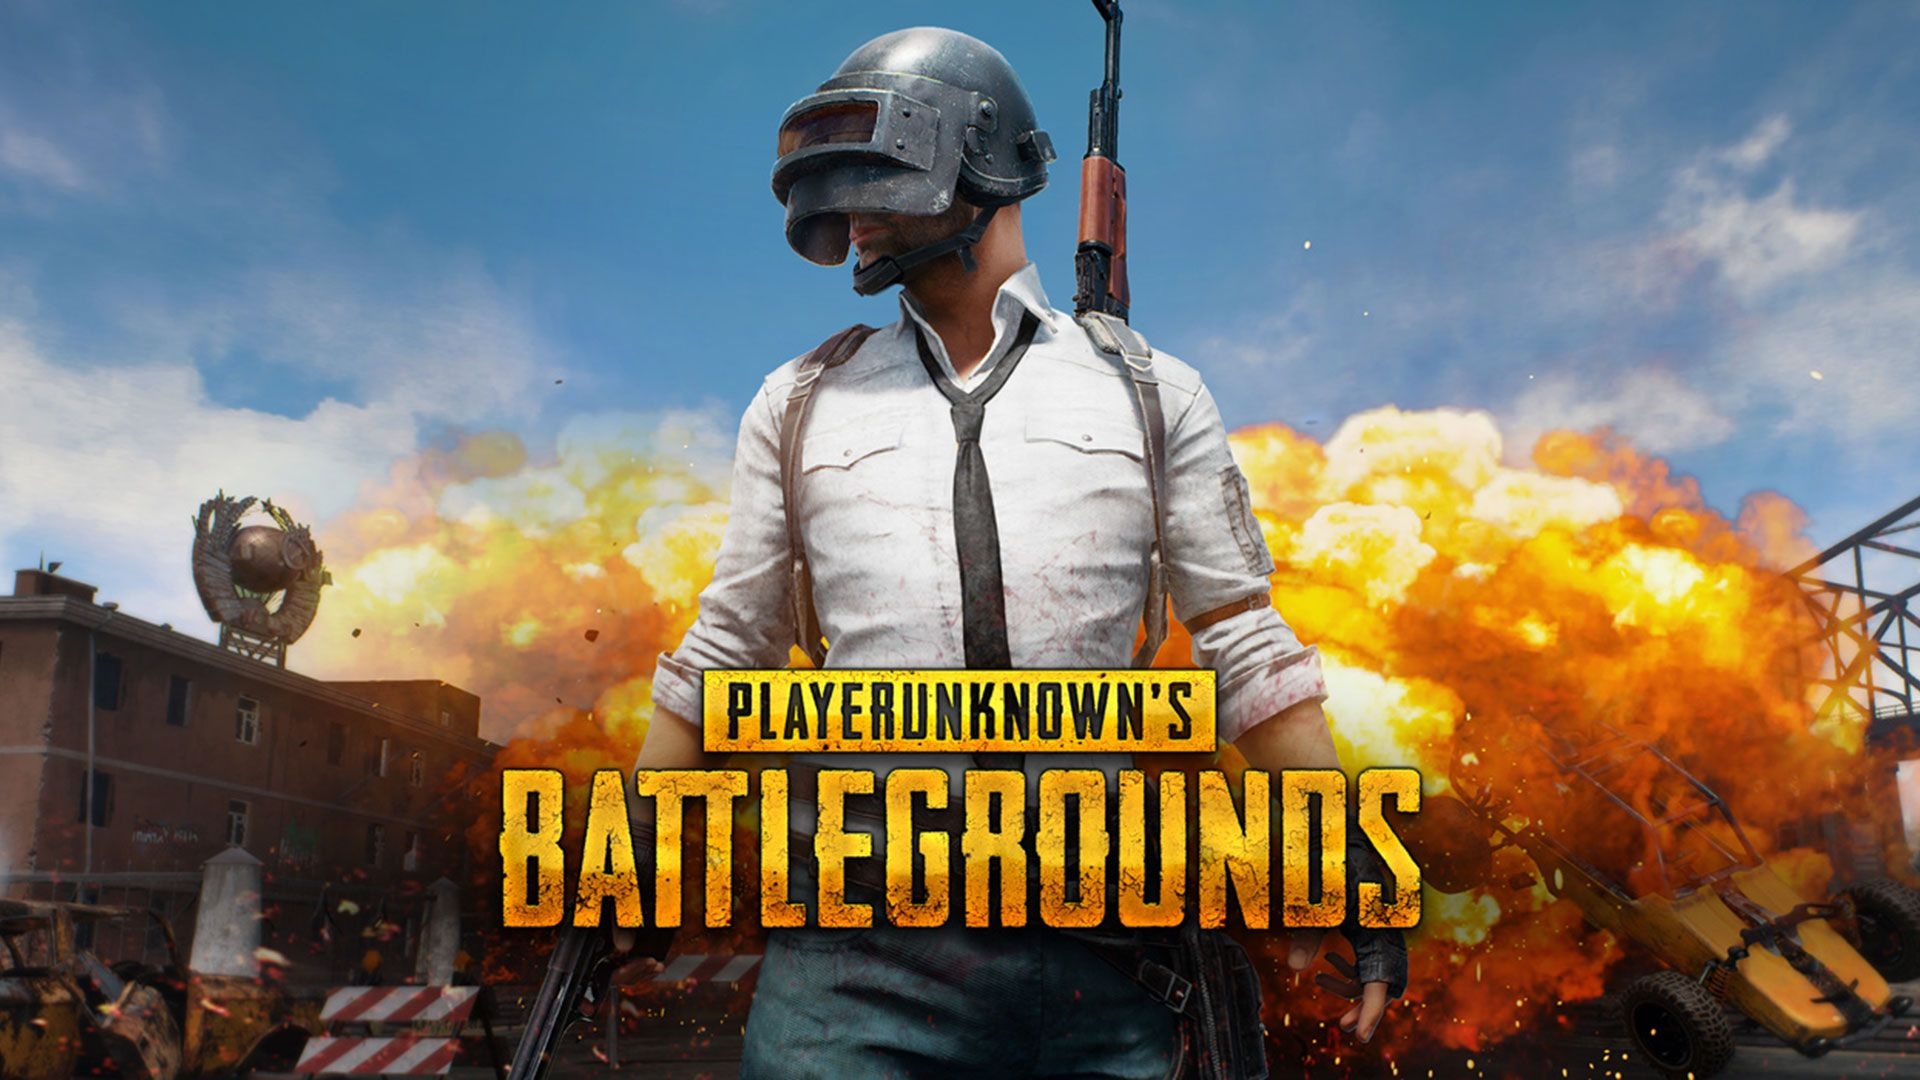 Get Pubg Wallpapers Full Hd On Wallpaper 1080p Hd To Your Hd 1080p